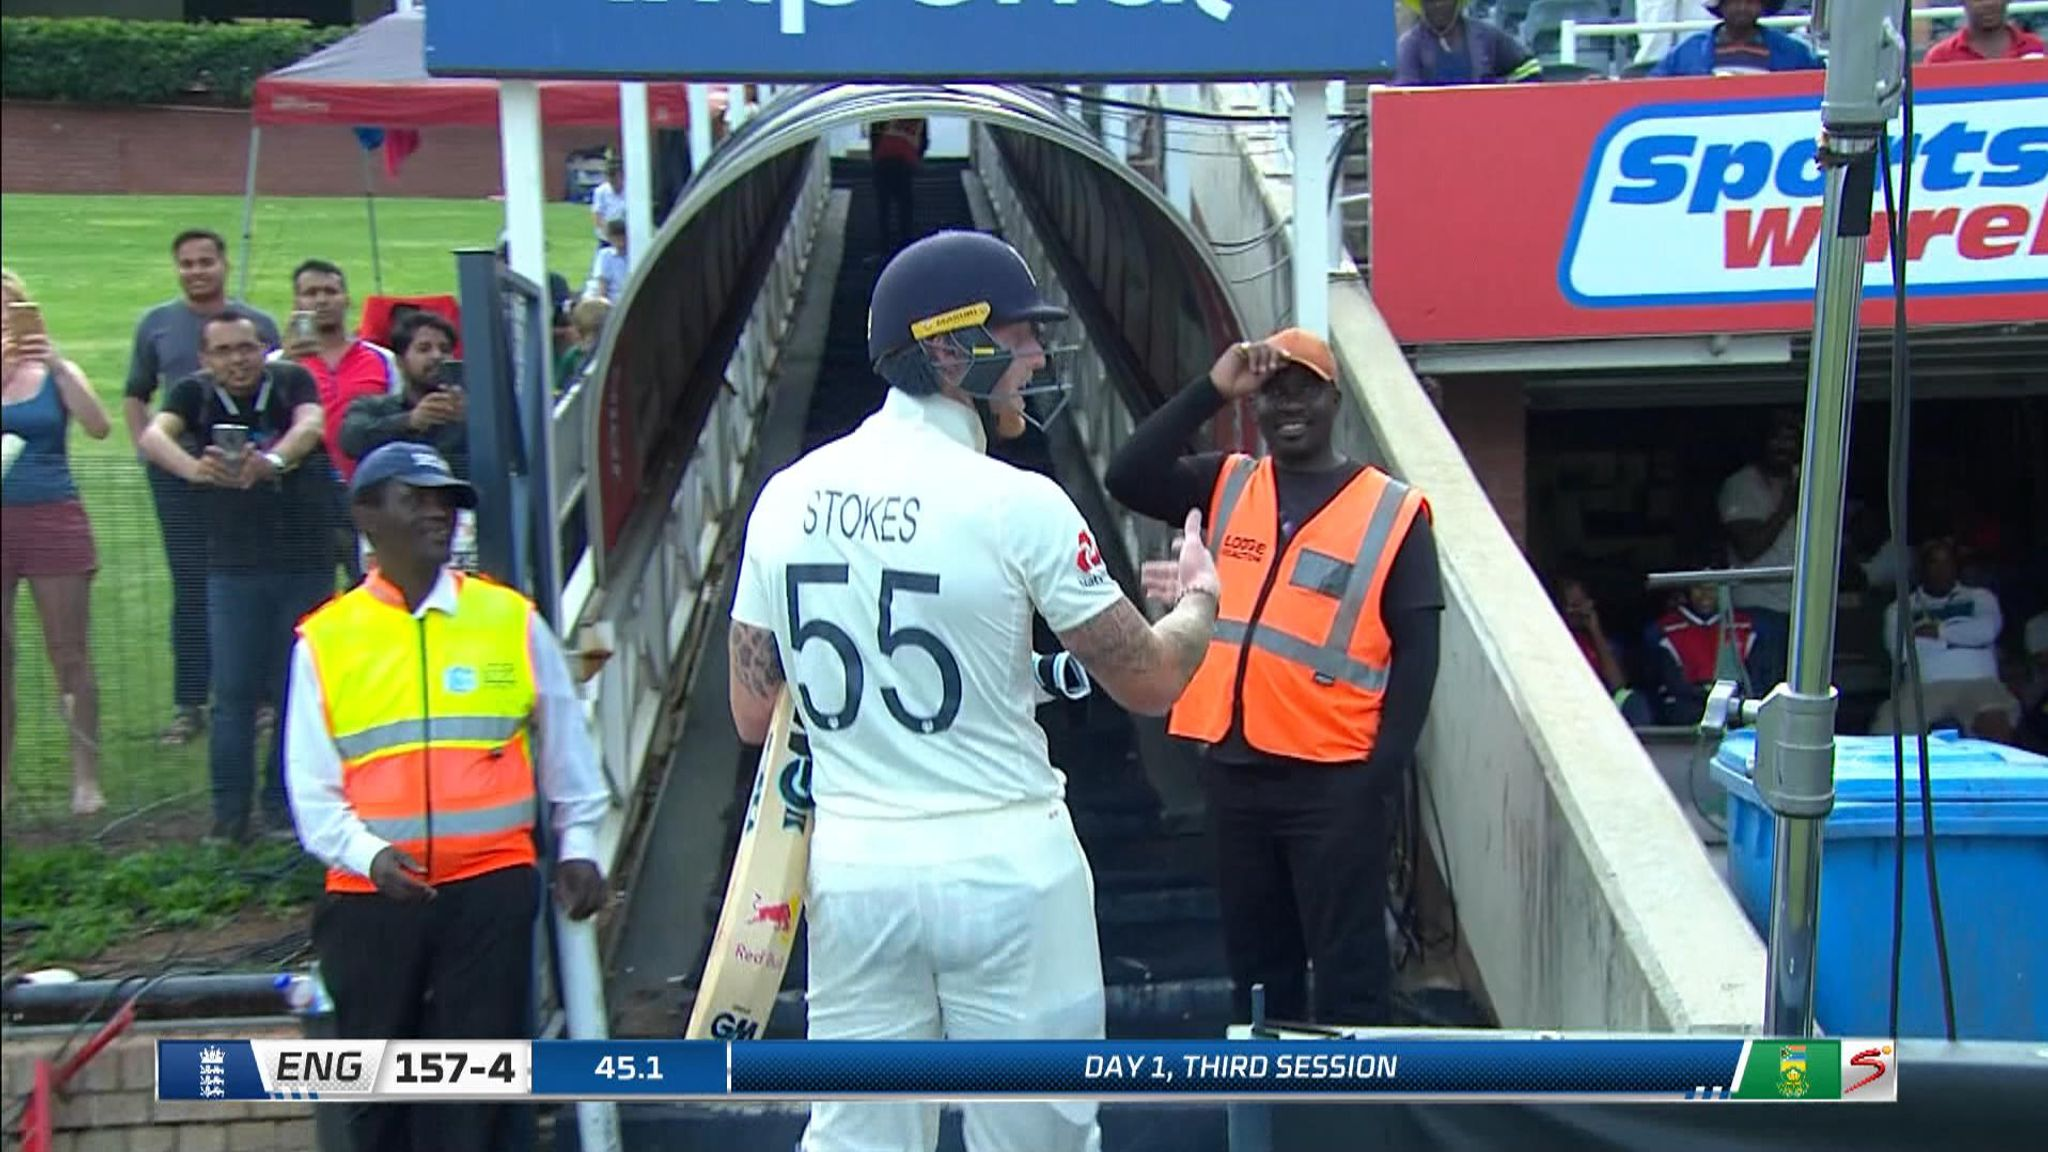 Ben Stokes apologises for shouting abuse at spectator in Johannesburg